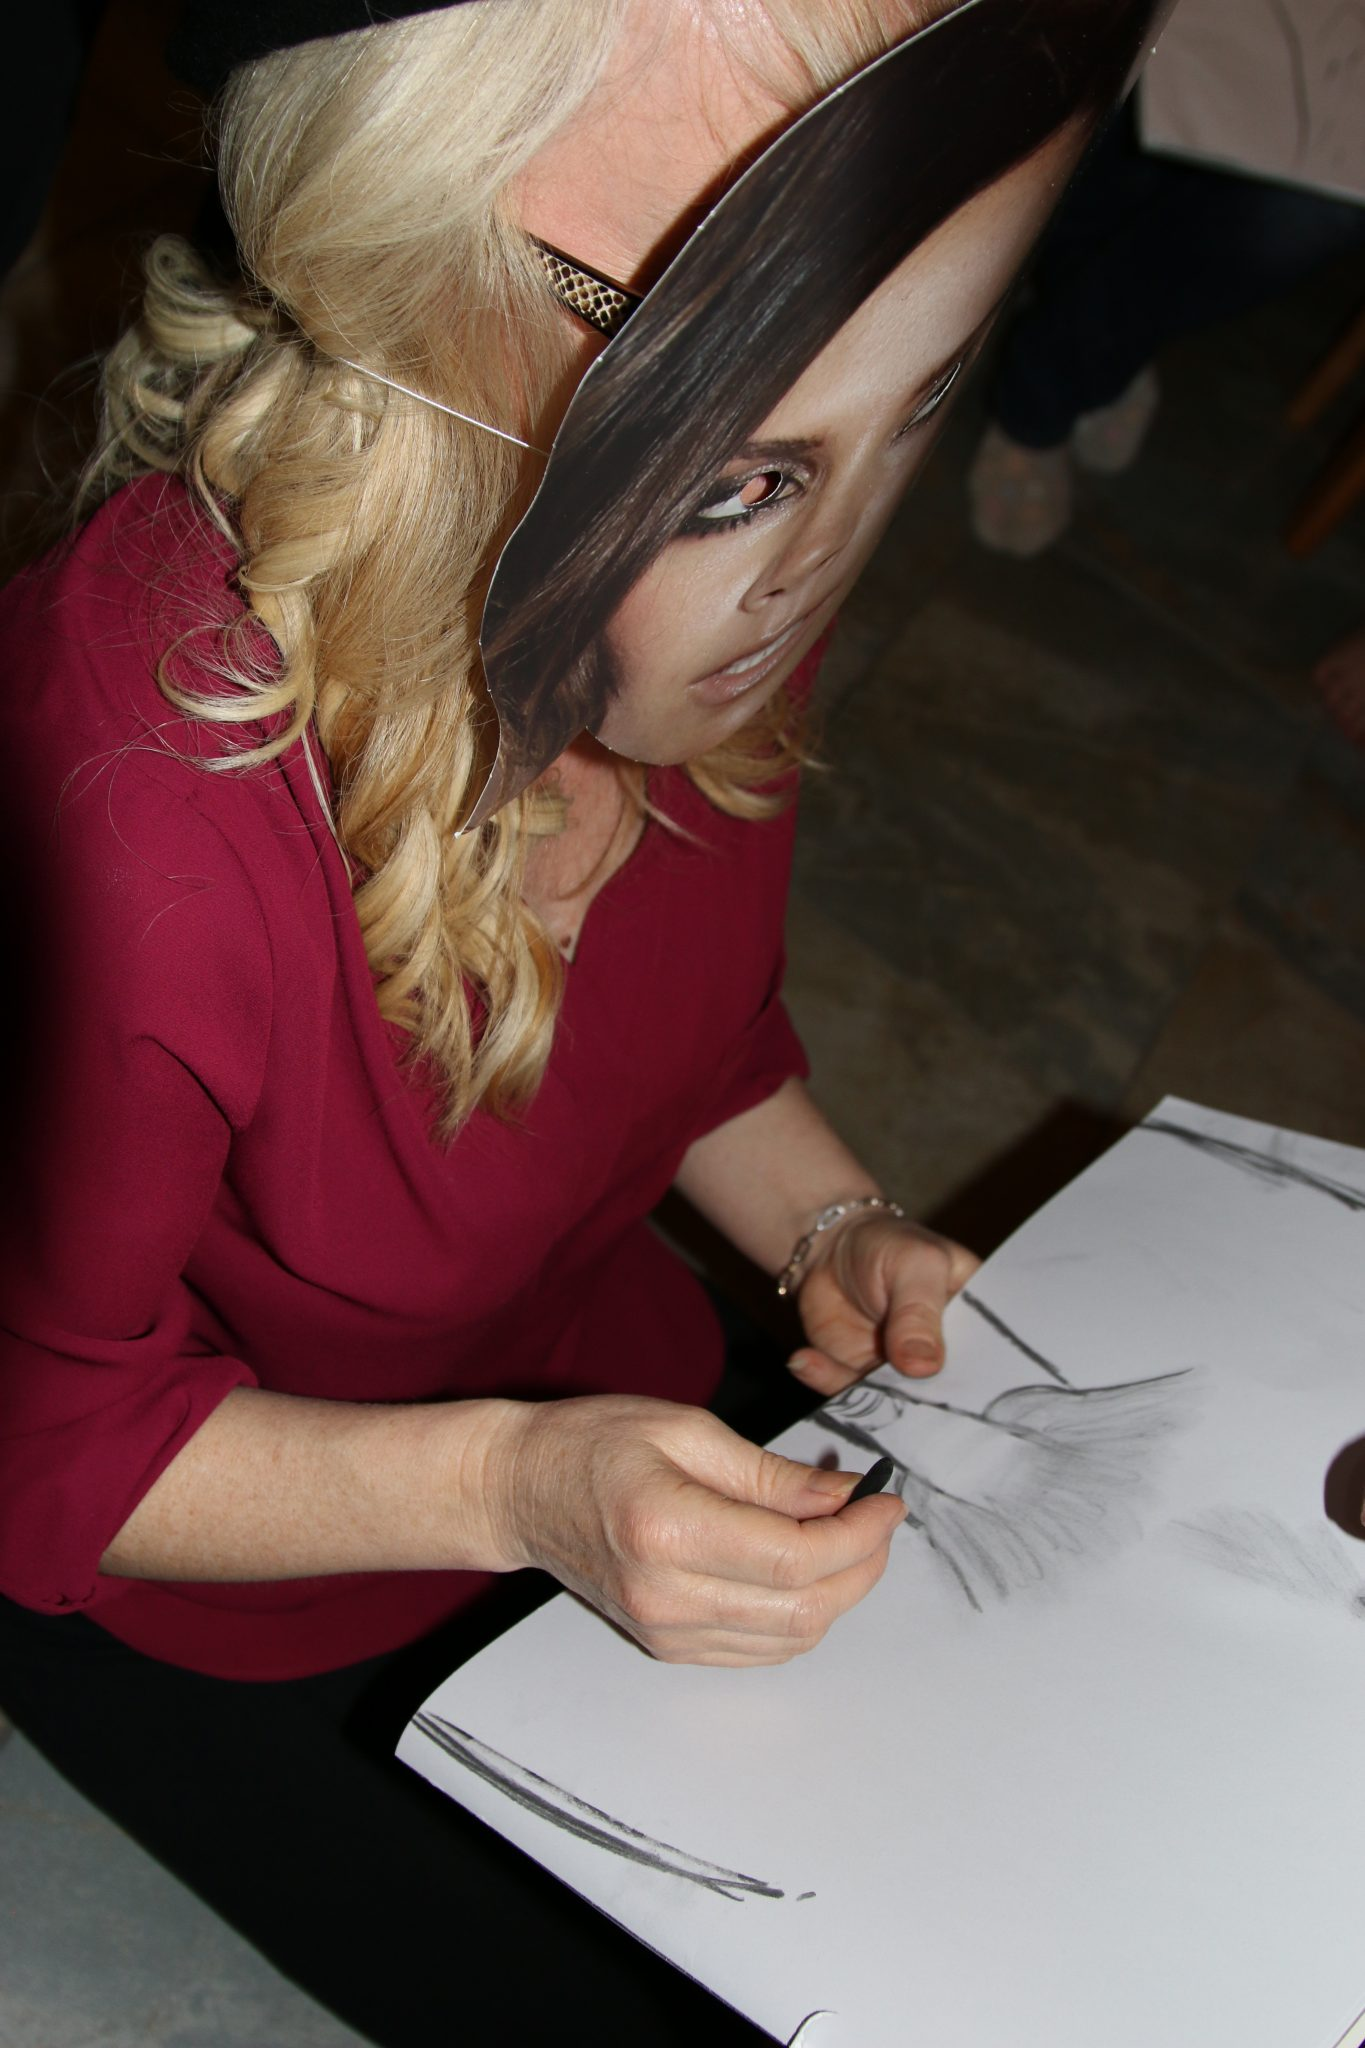 All your hen life drawing questions answered!